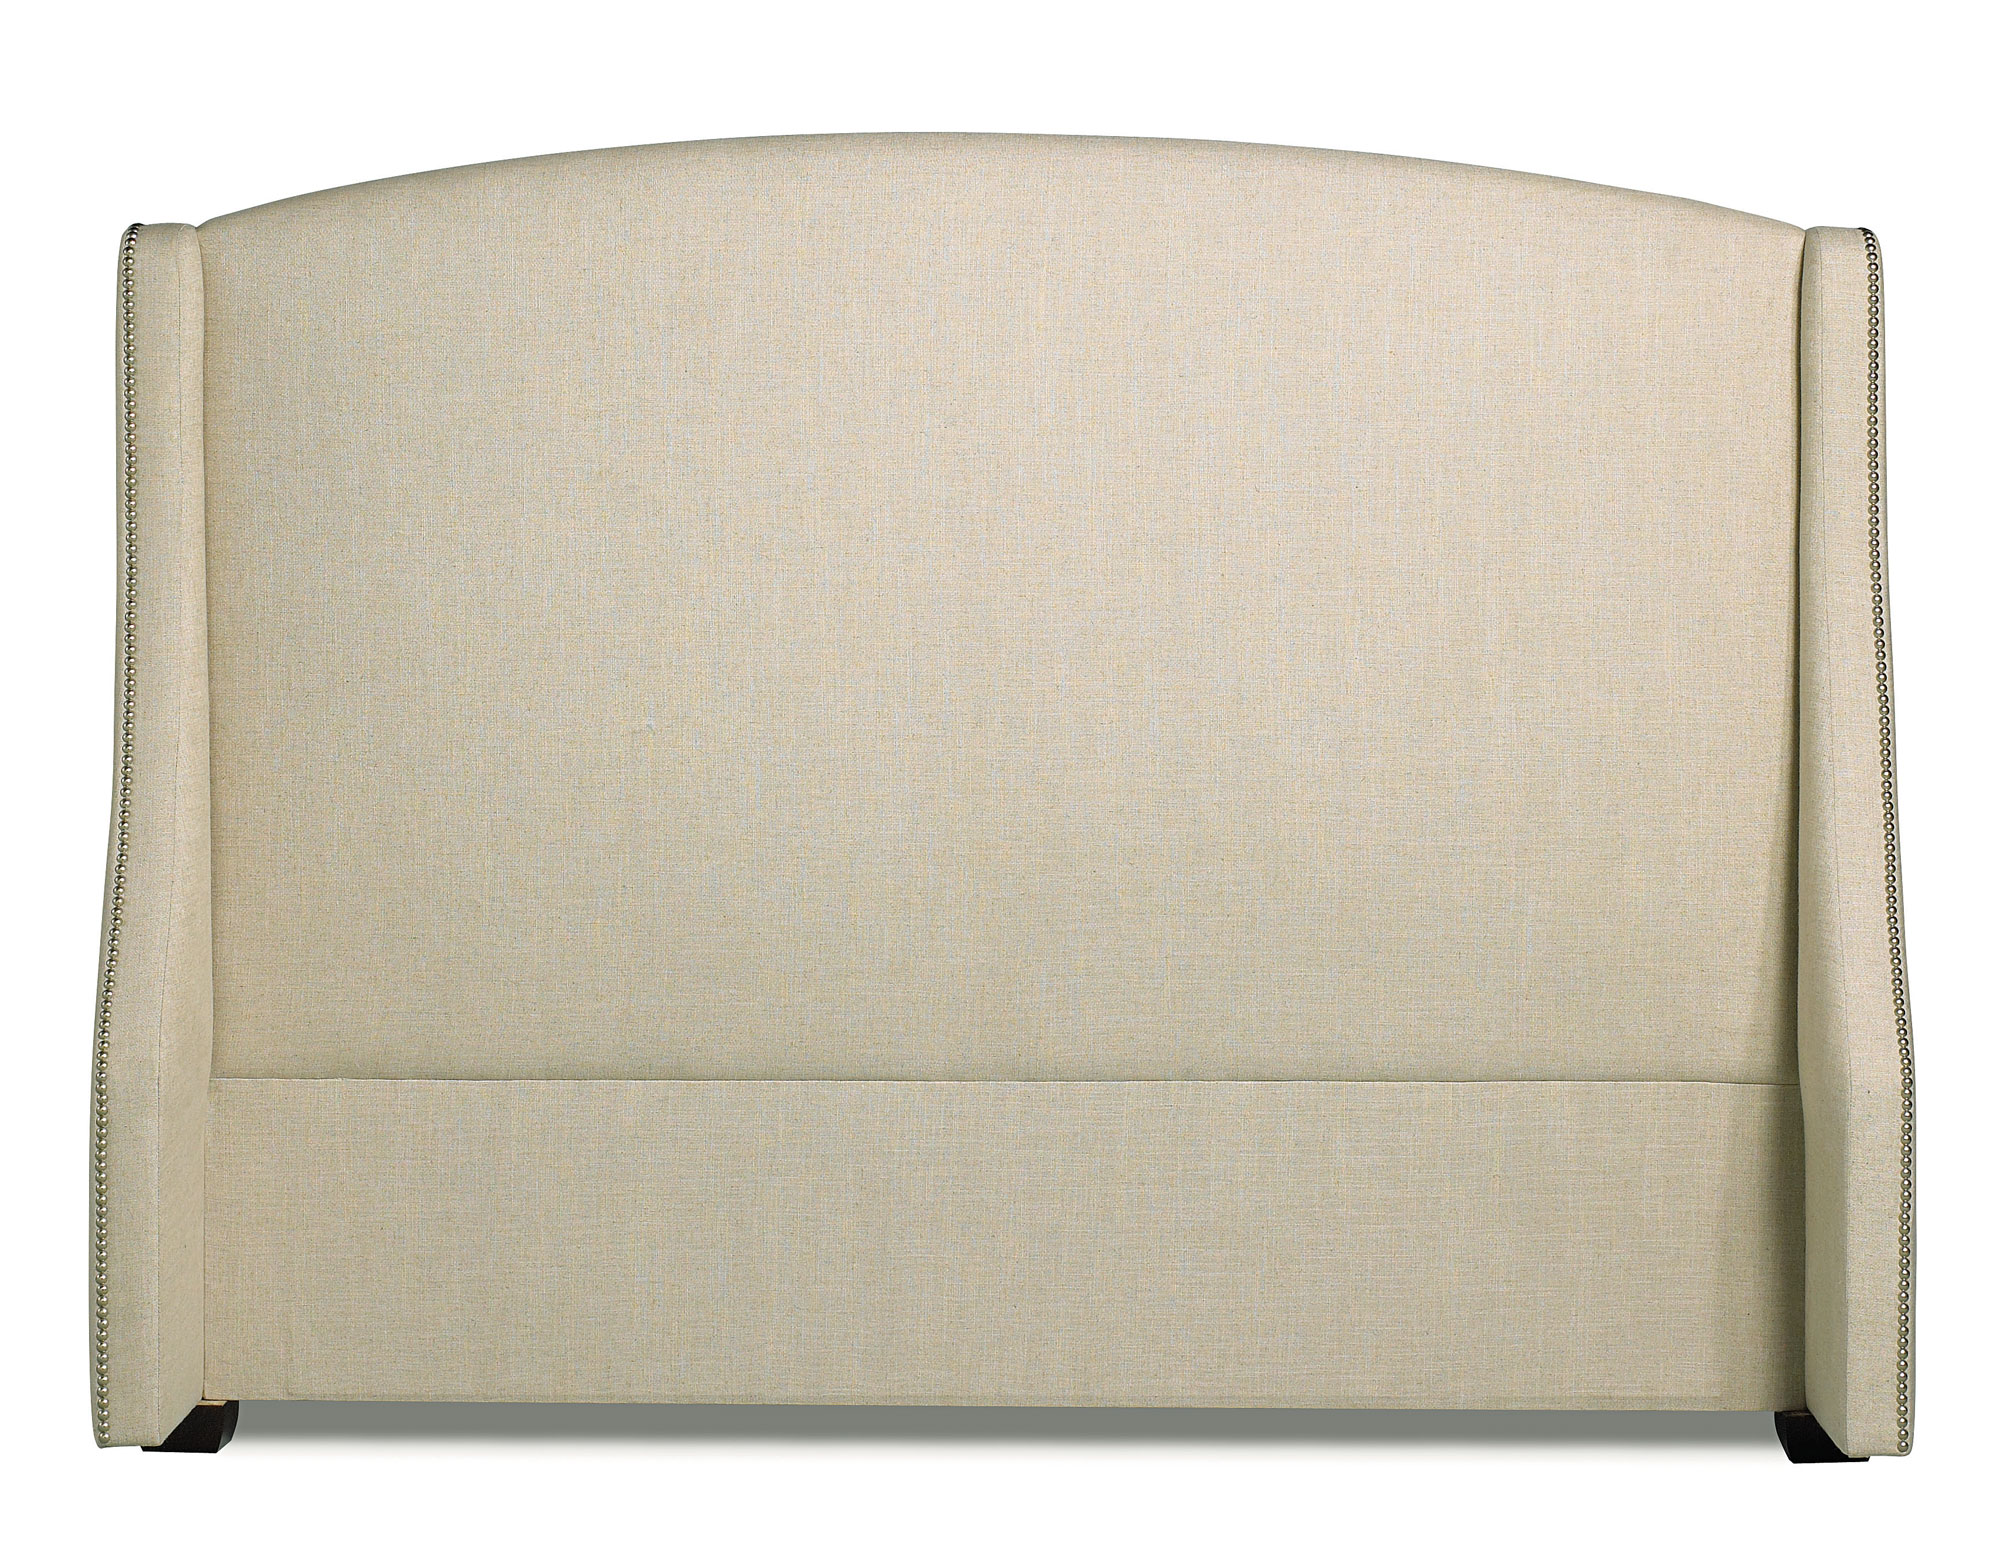 bedroom master buy to becker king where upholstered headboards queen headboard